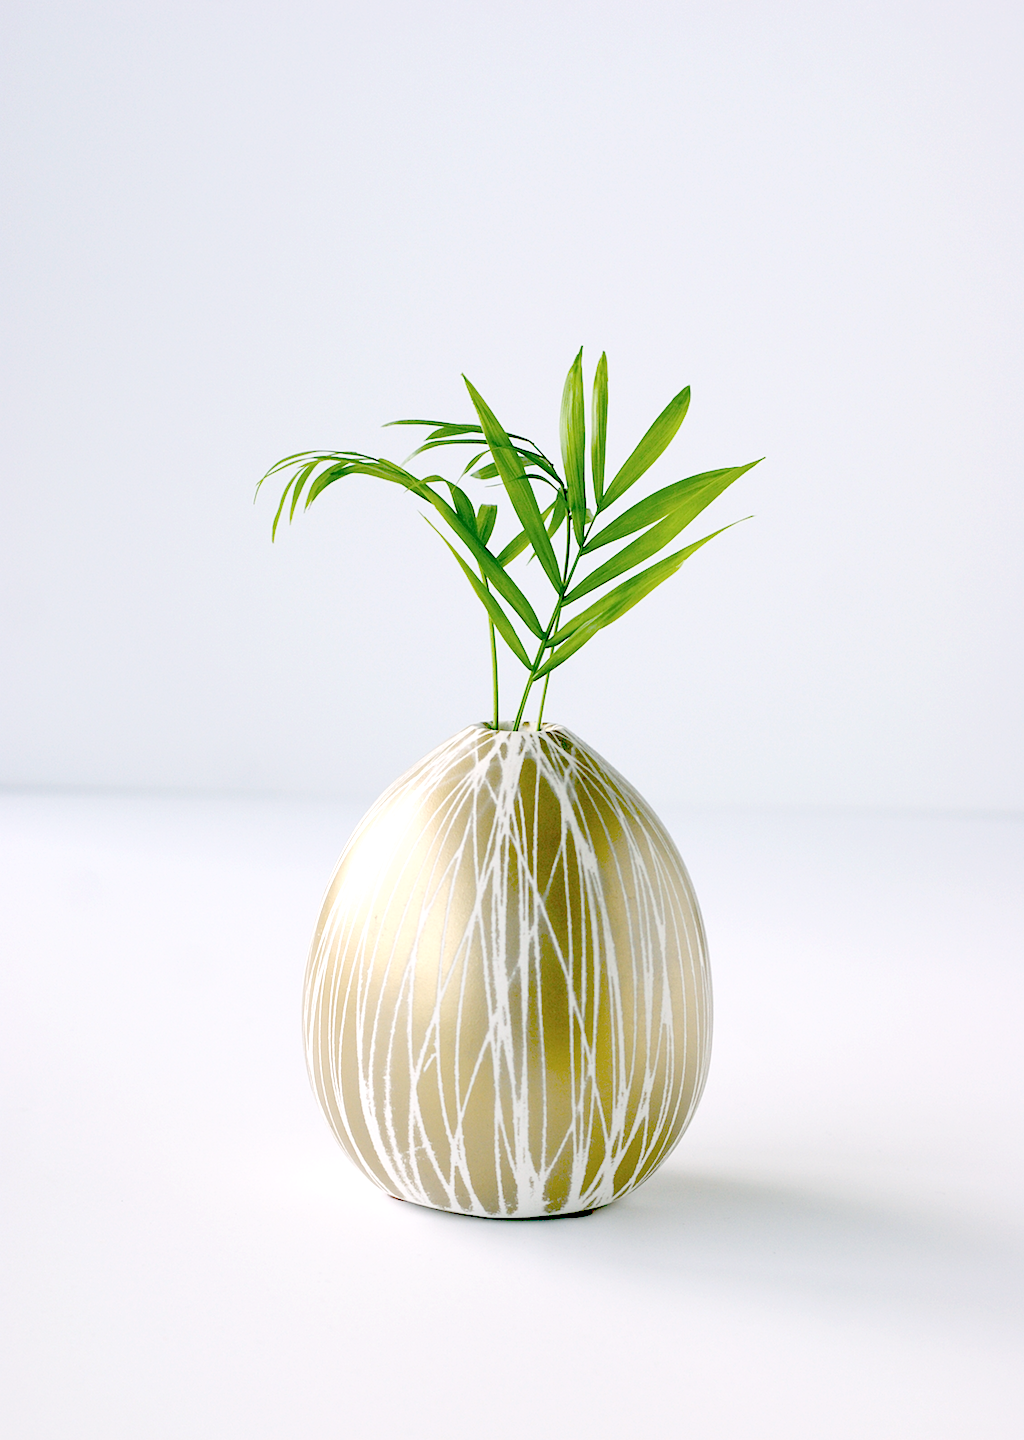 West Elm Vase Makeover - DIY Modern Pineapple Vase